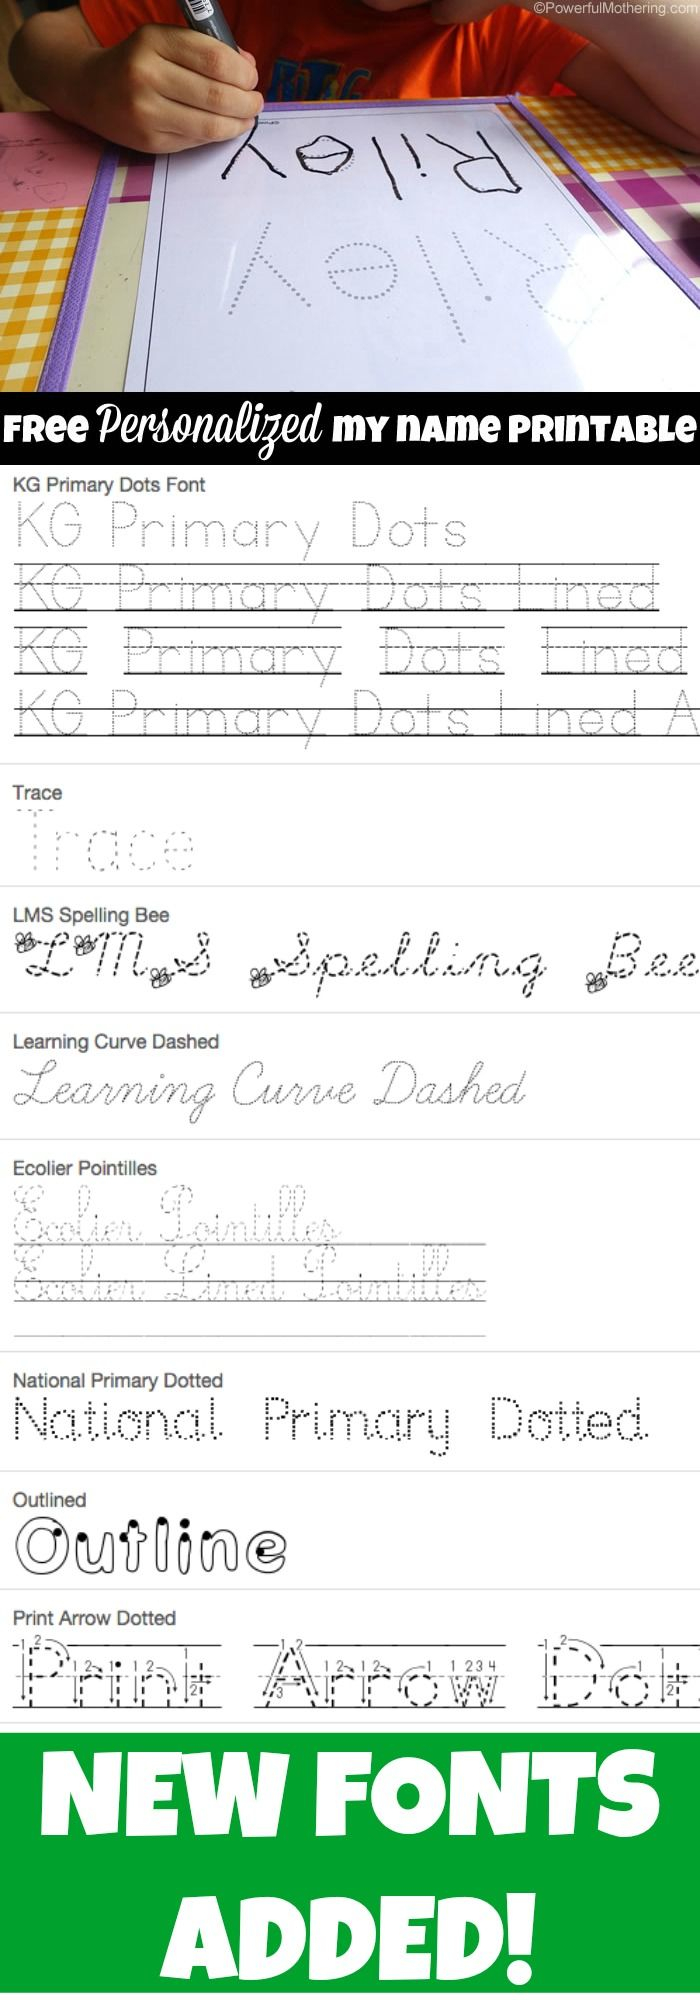 Free Name Tracing Worksheet Printable + Font Choices intended for Name Tracing Qld Font